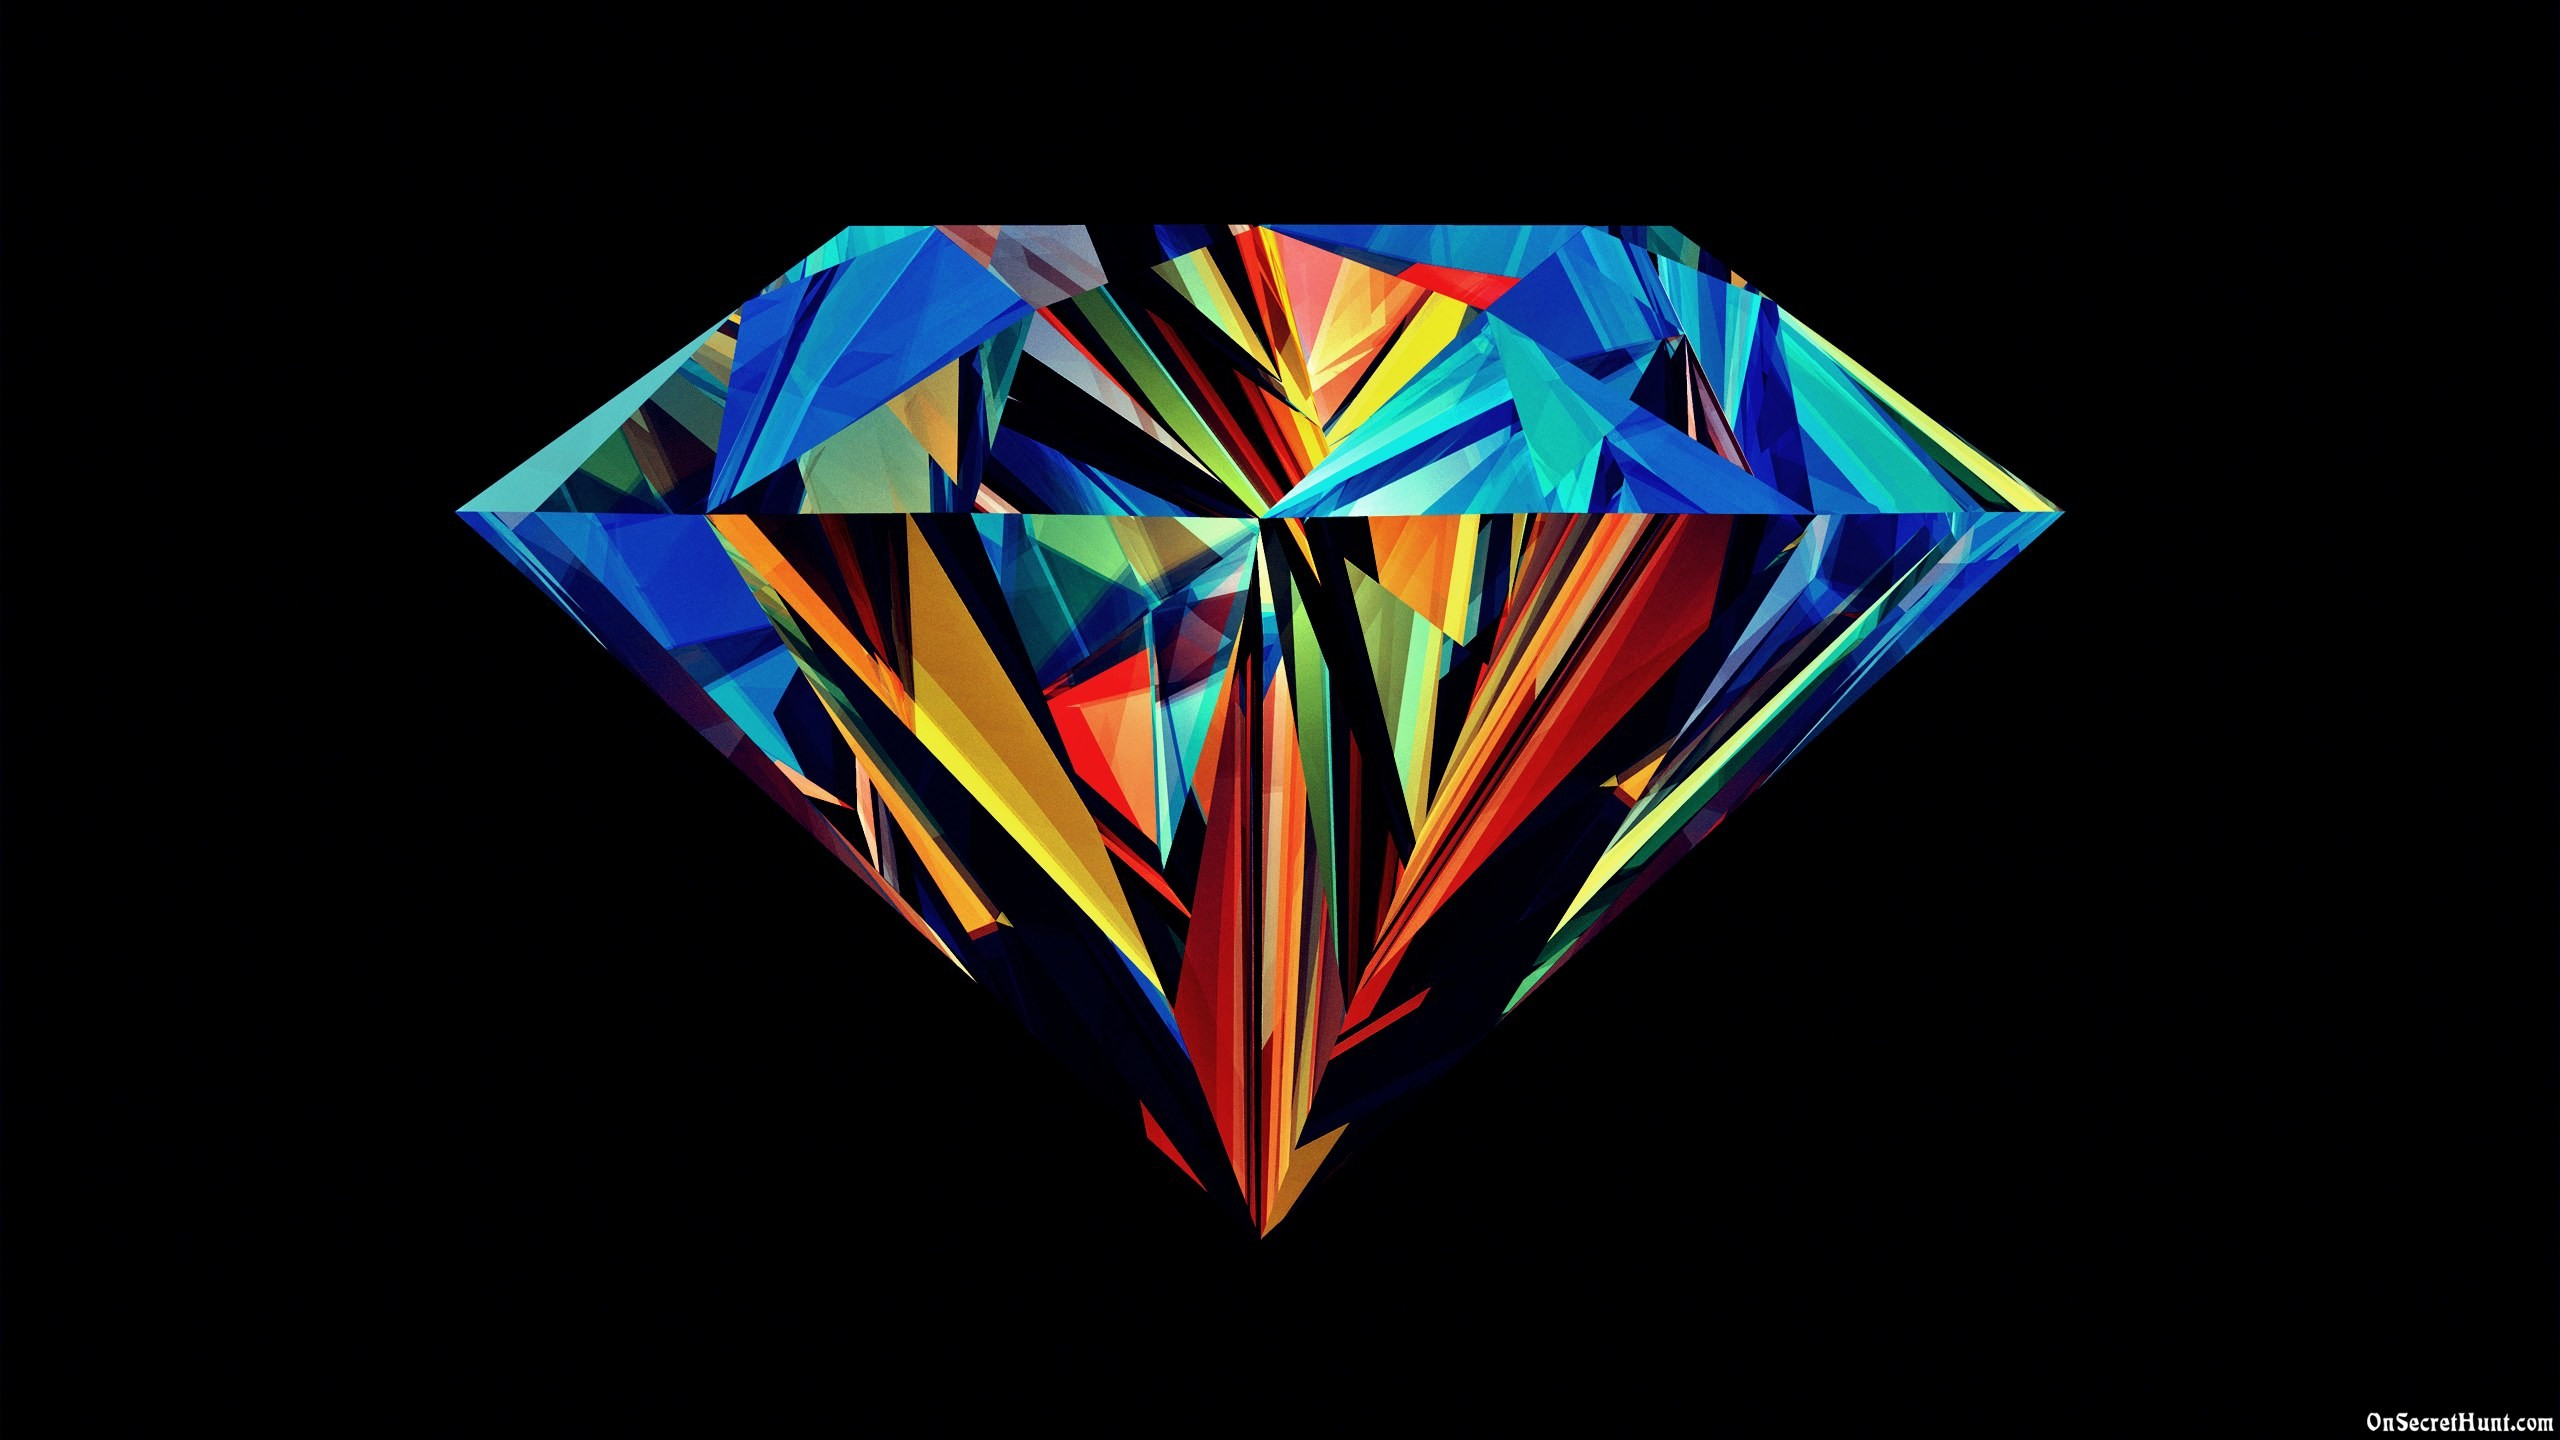 2560x1440 Simple Diamond Supply Co Logo Wallpaper - Zolibebe HD Wallpapers Site